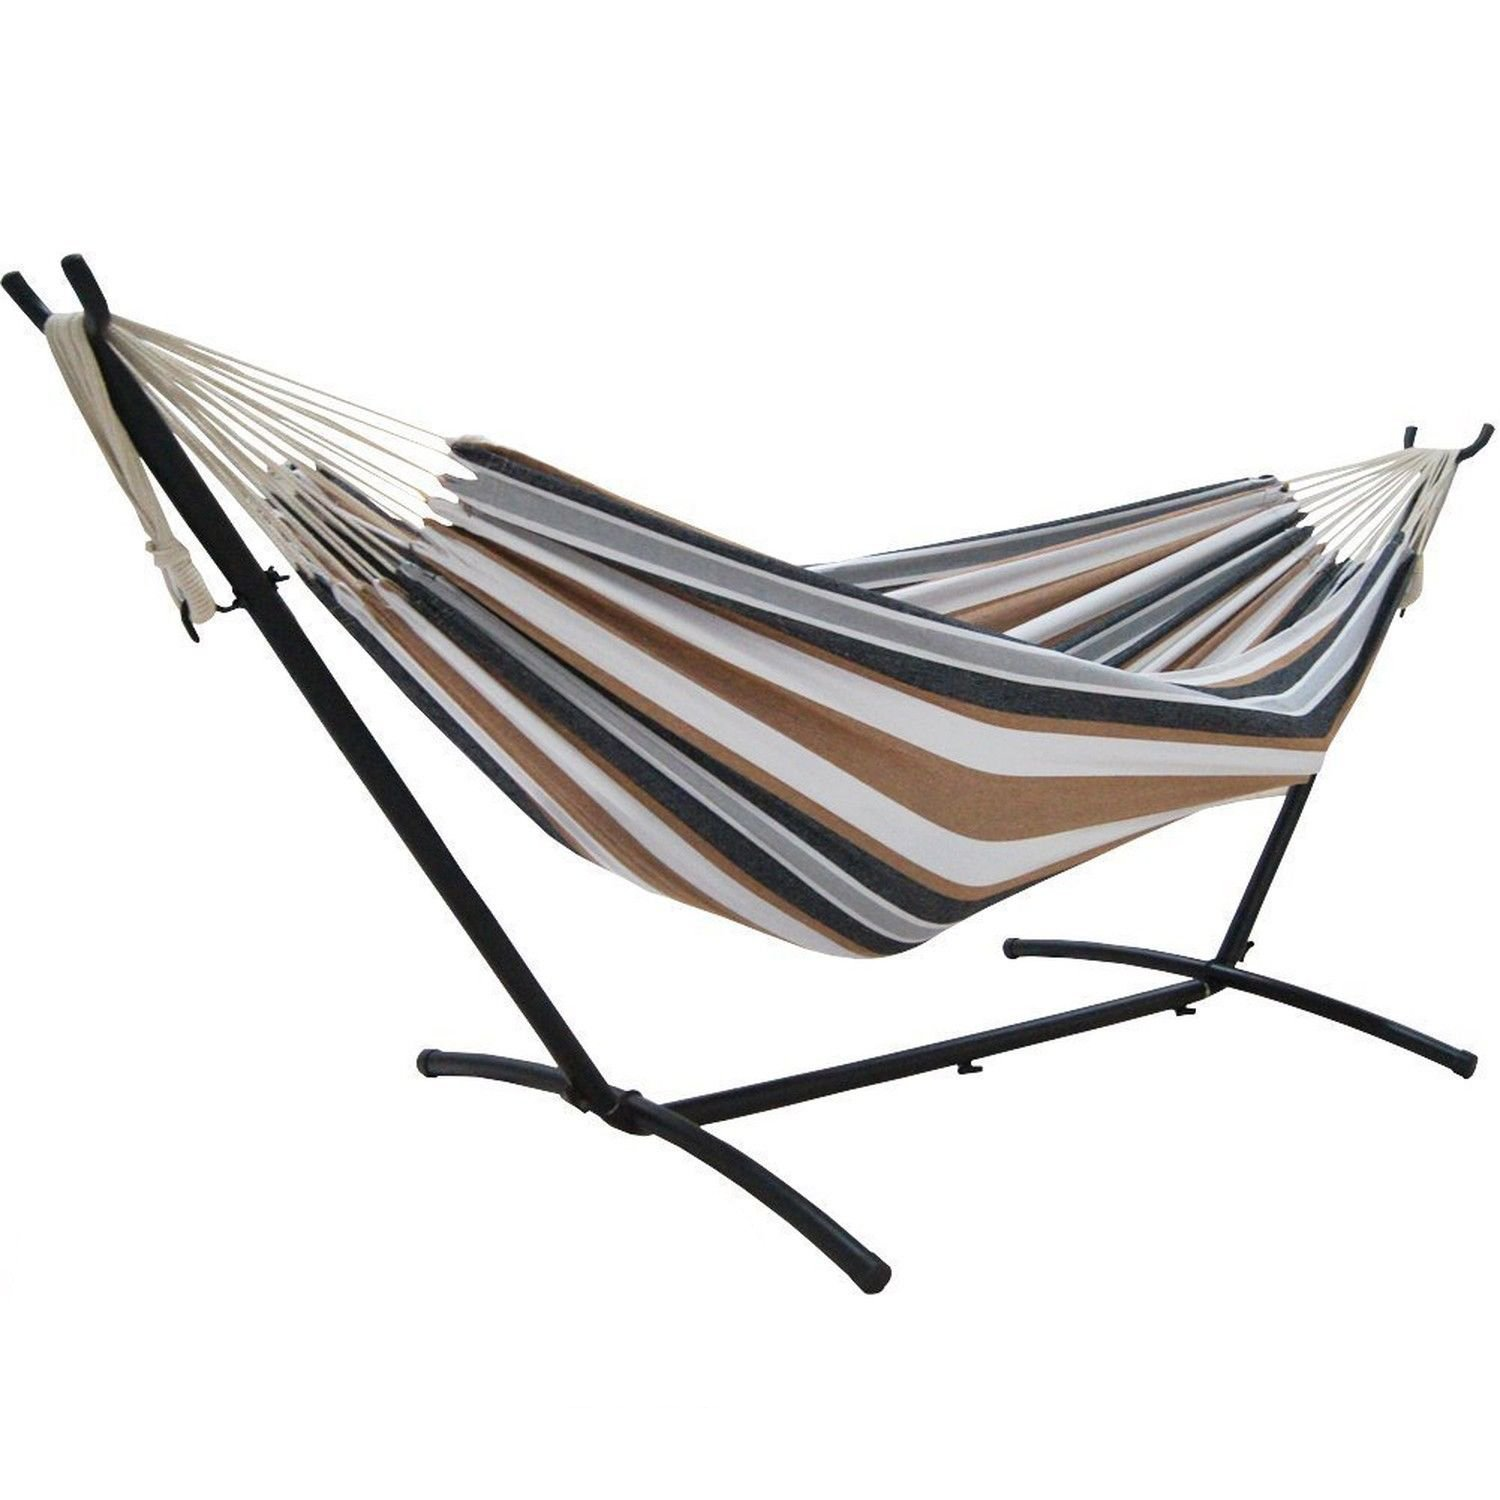 garden outdoor ideas may year that summer us for need all the furniture long keep this one hammock to i buy pin pier think catalina feeling cove